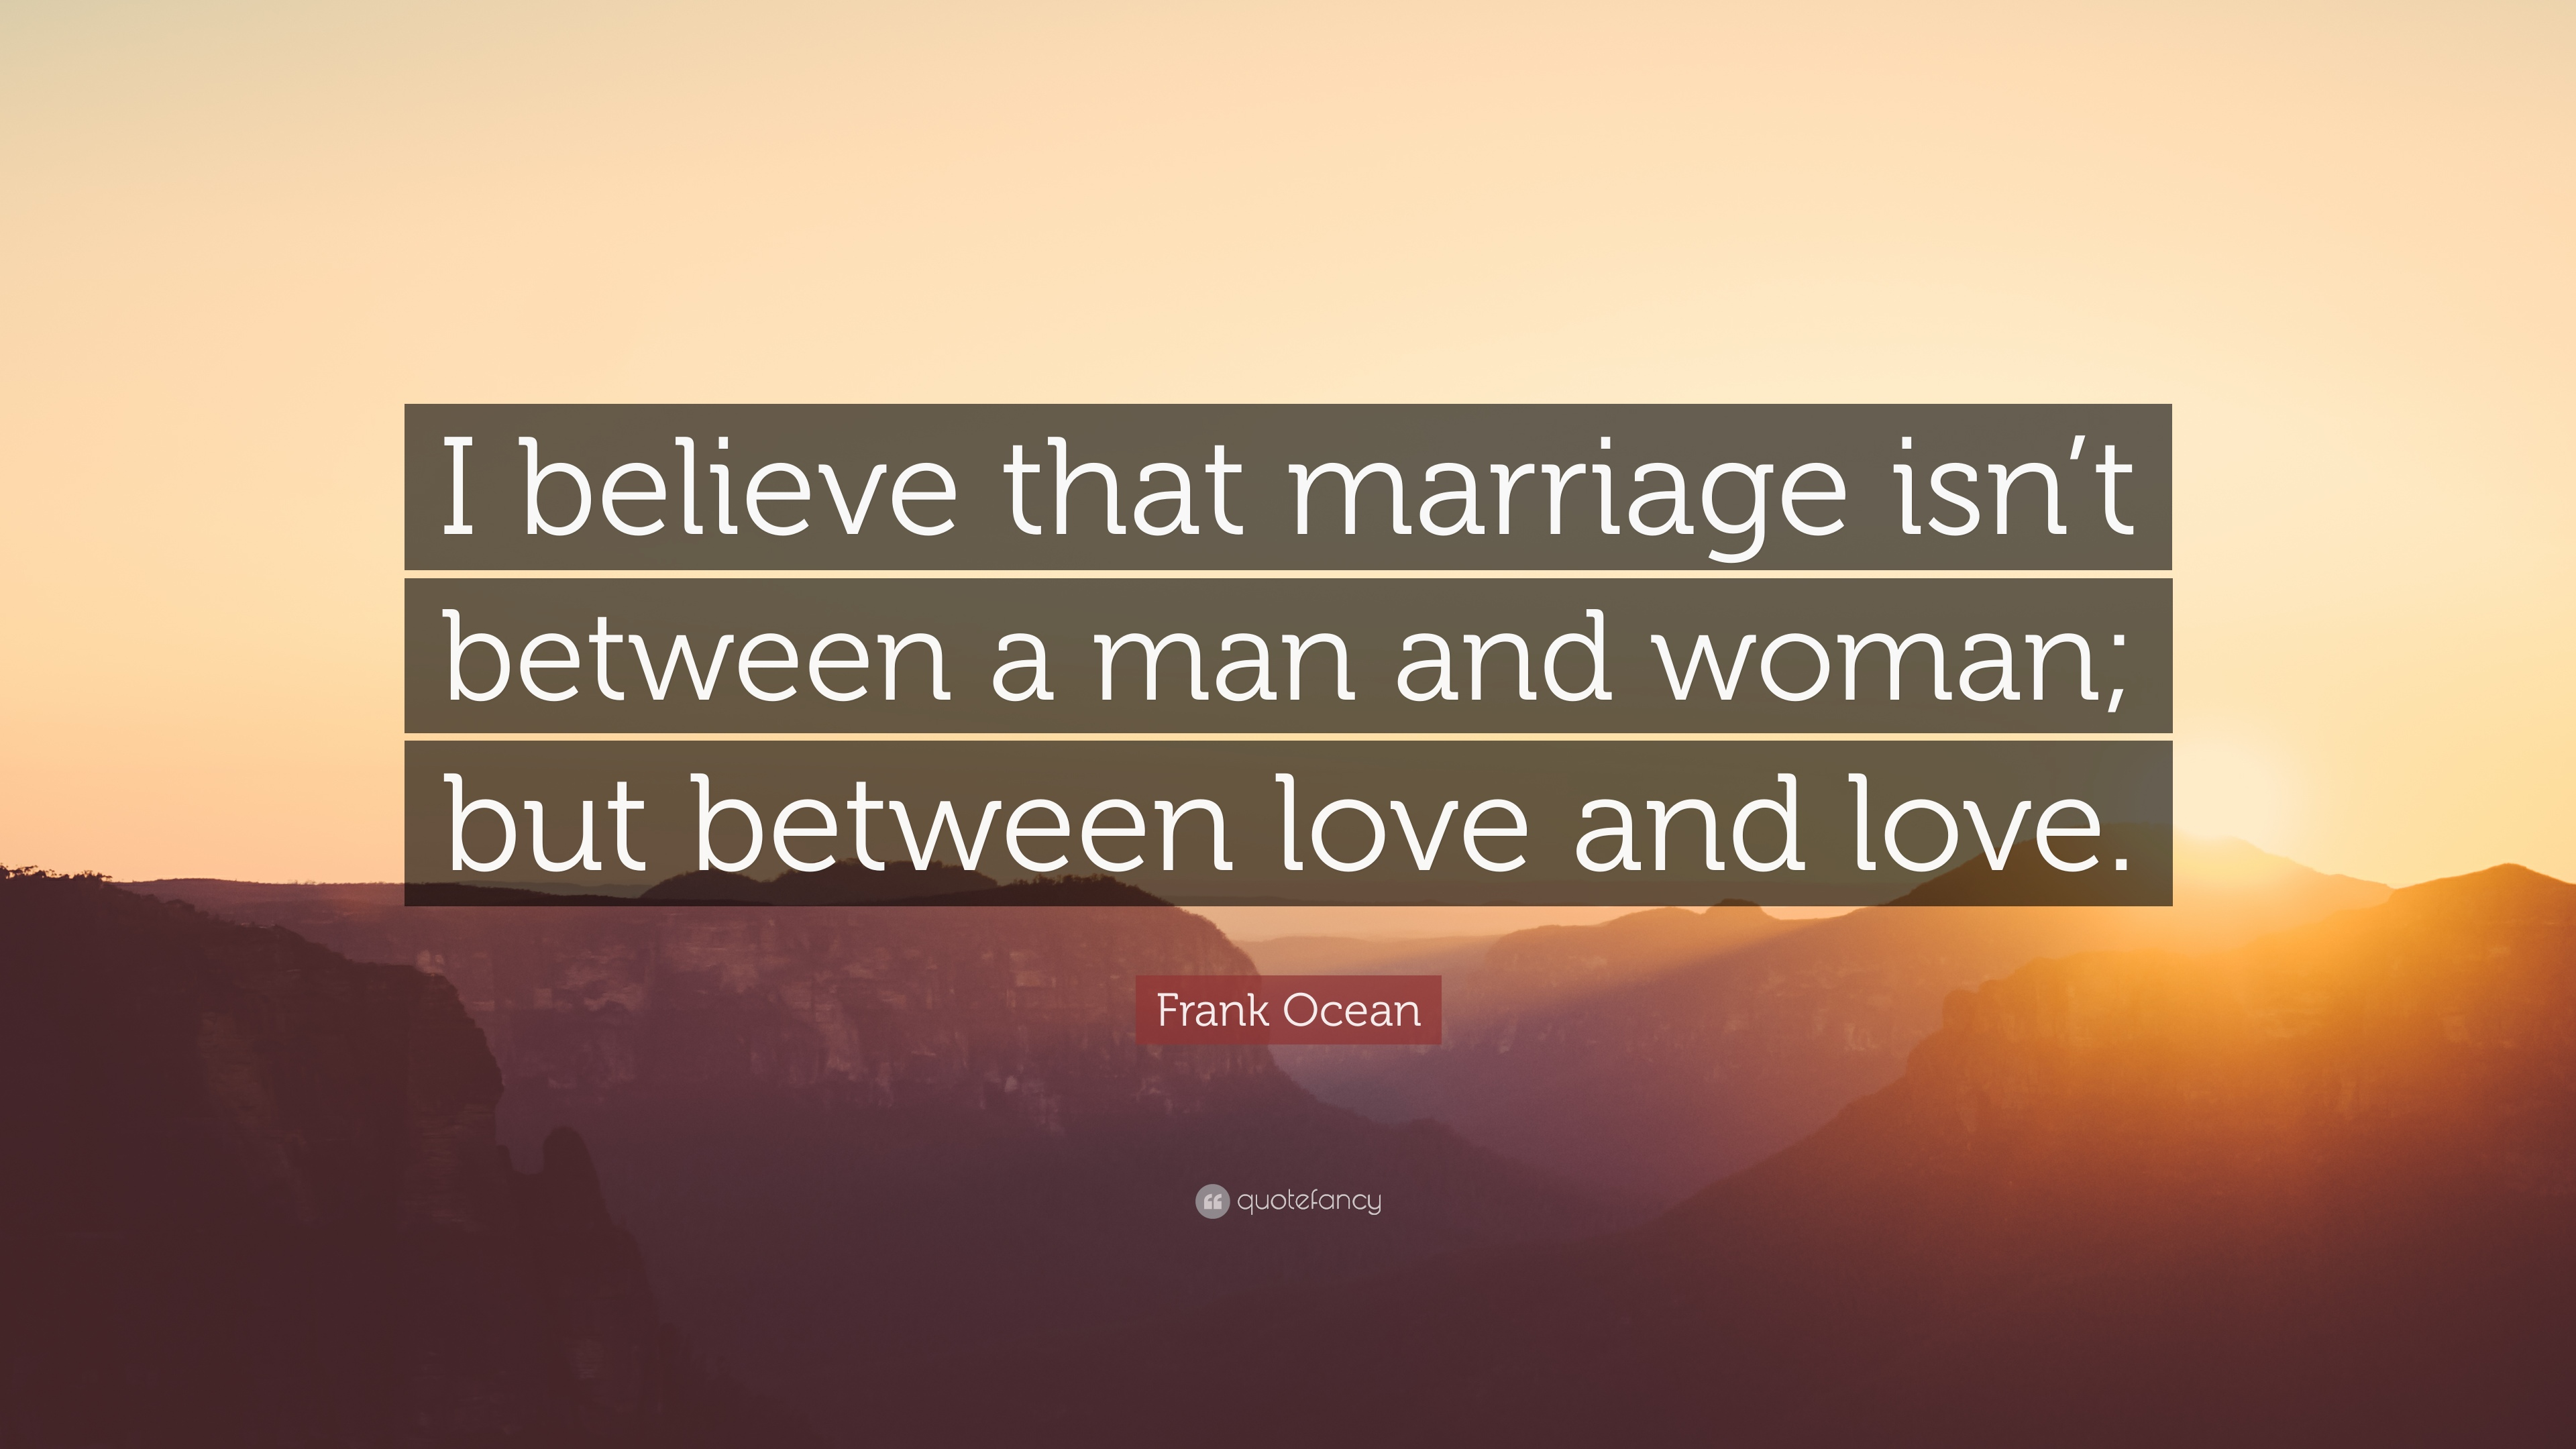 Frank Ocean Quote: U201cI Believe That Marriage Isnu0027t Between A Man And